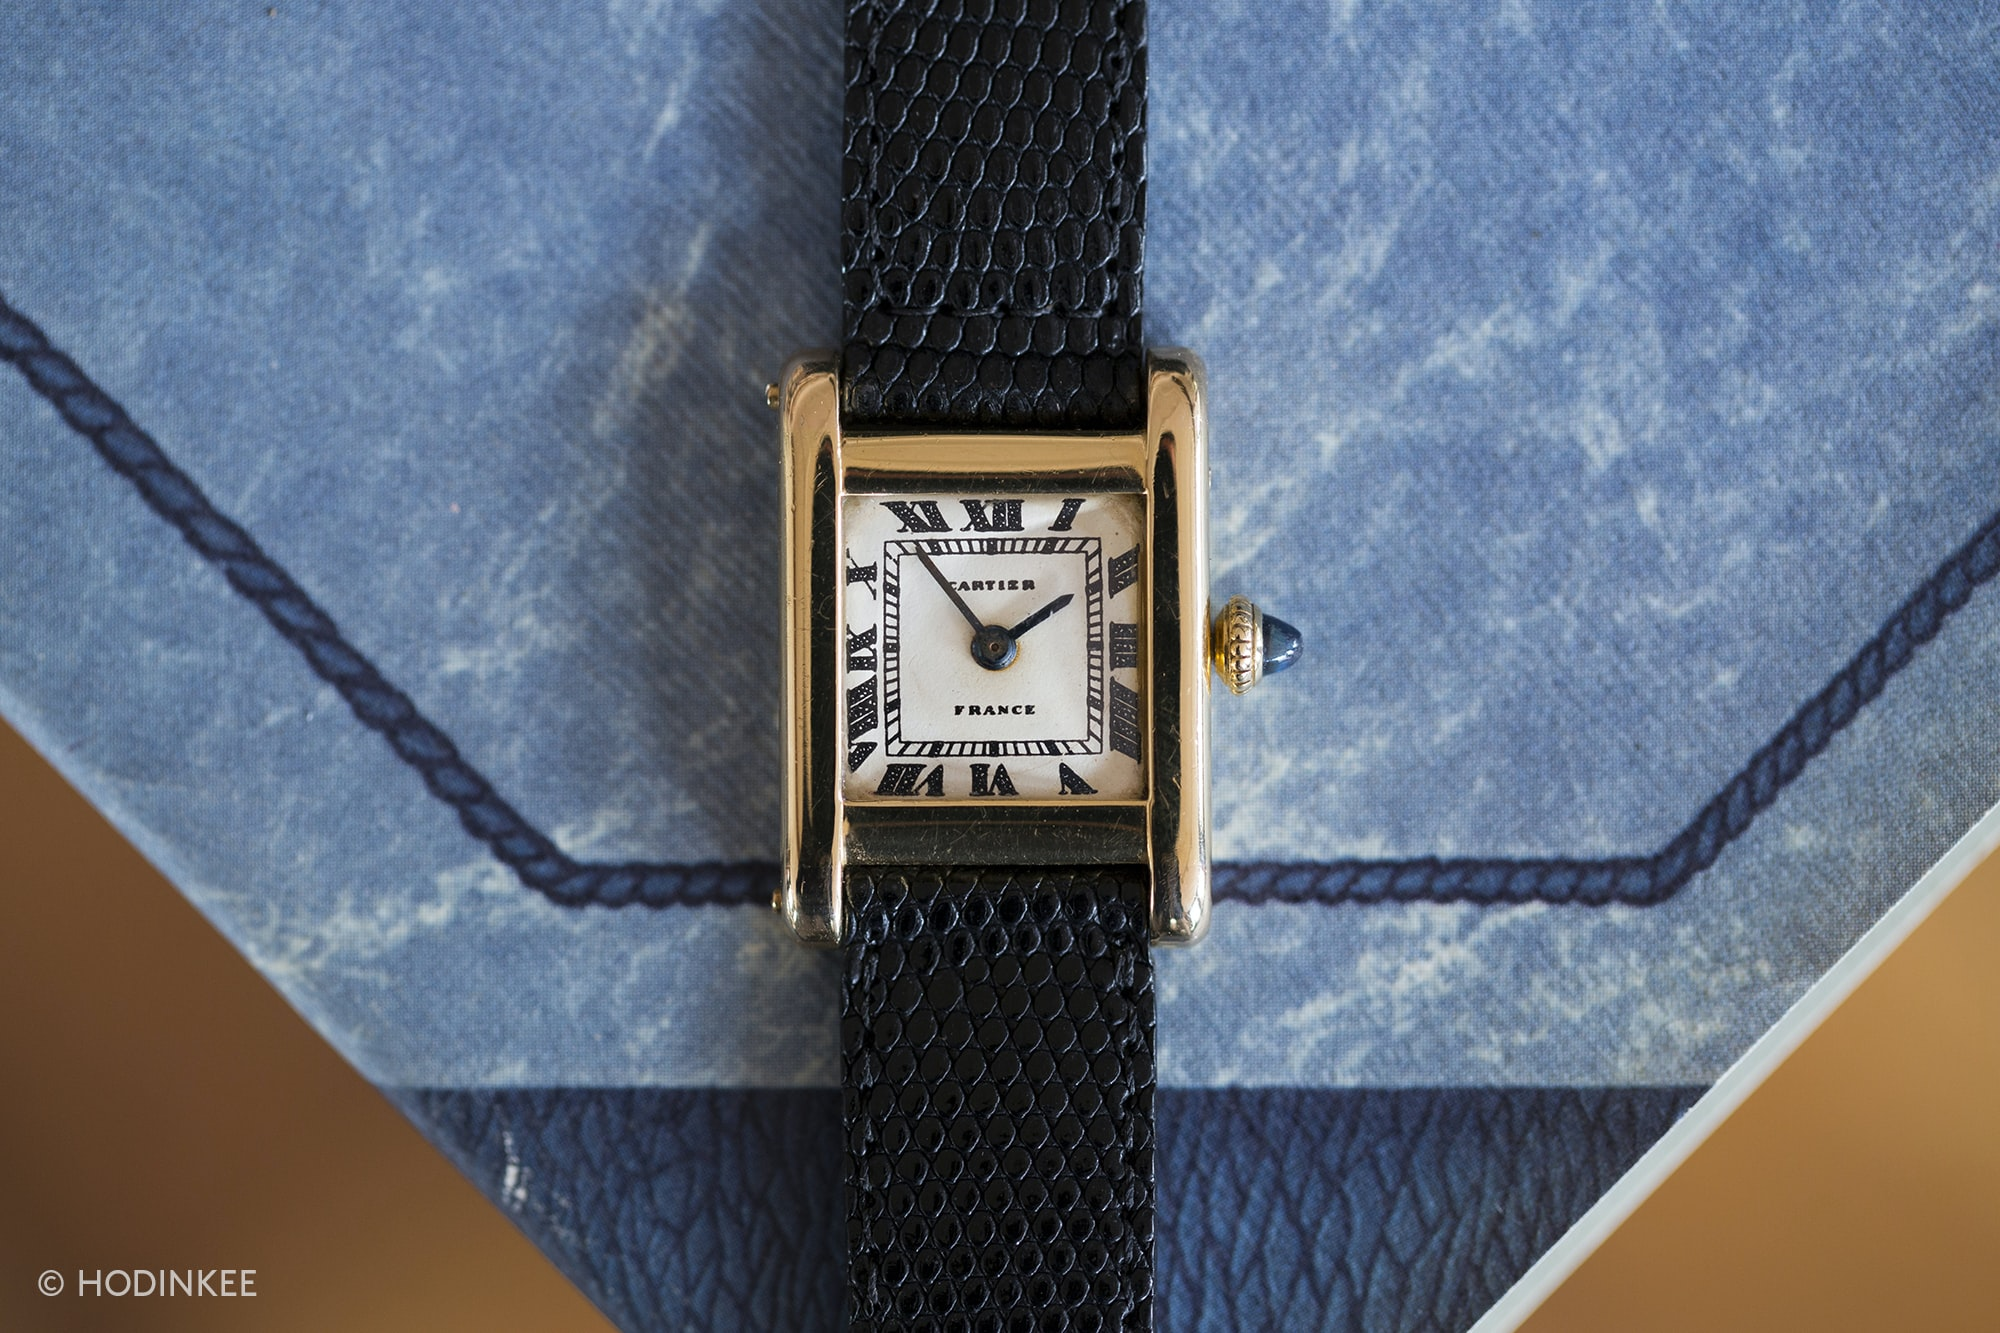 jackie o cartier tank Auction Report: Jacqueline Kennedy Onassis' Cartier Tank Sells For $379,500 Auction Report: Jacqueline Kennedy Onassis' Cartier Tank Sells For $379,500 B89A0242 copy